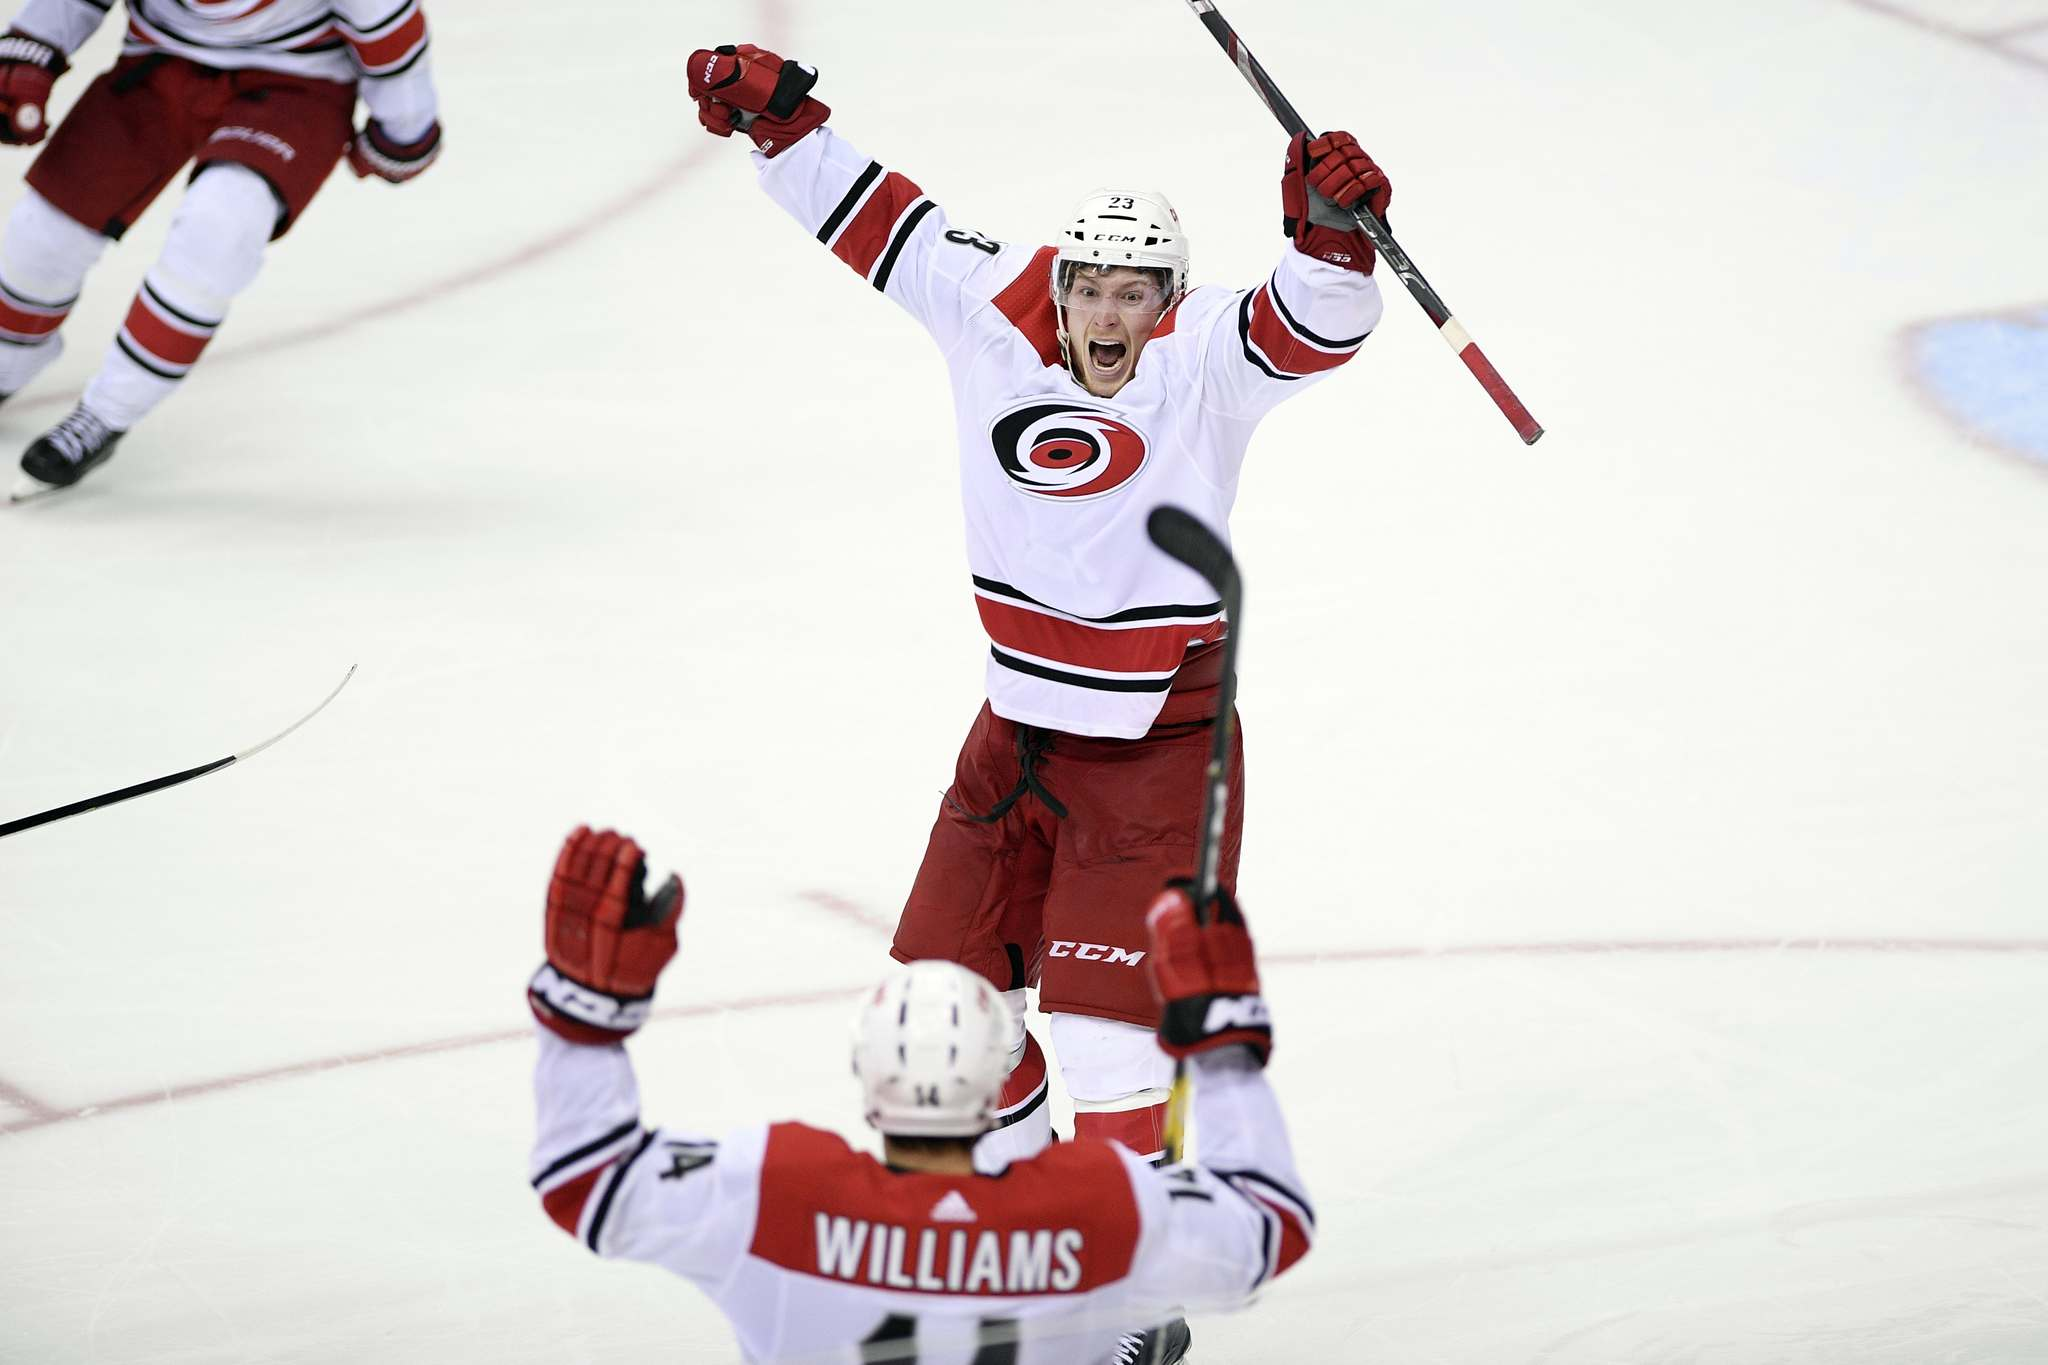 The Carolina Hurricanes have the fifth youngest team in the league, and the highest paid player makes $6 million a season. (Nick Wass / The Associated Press files))</p>